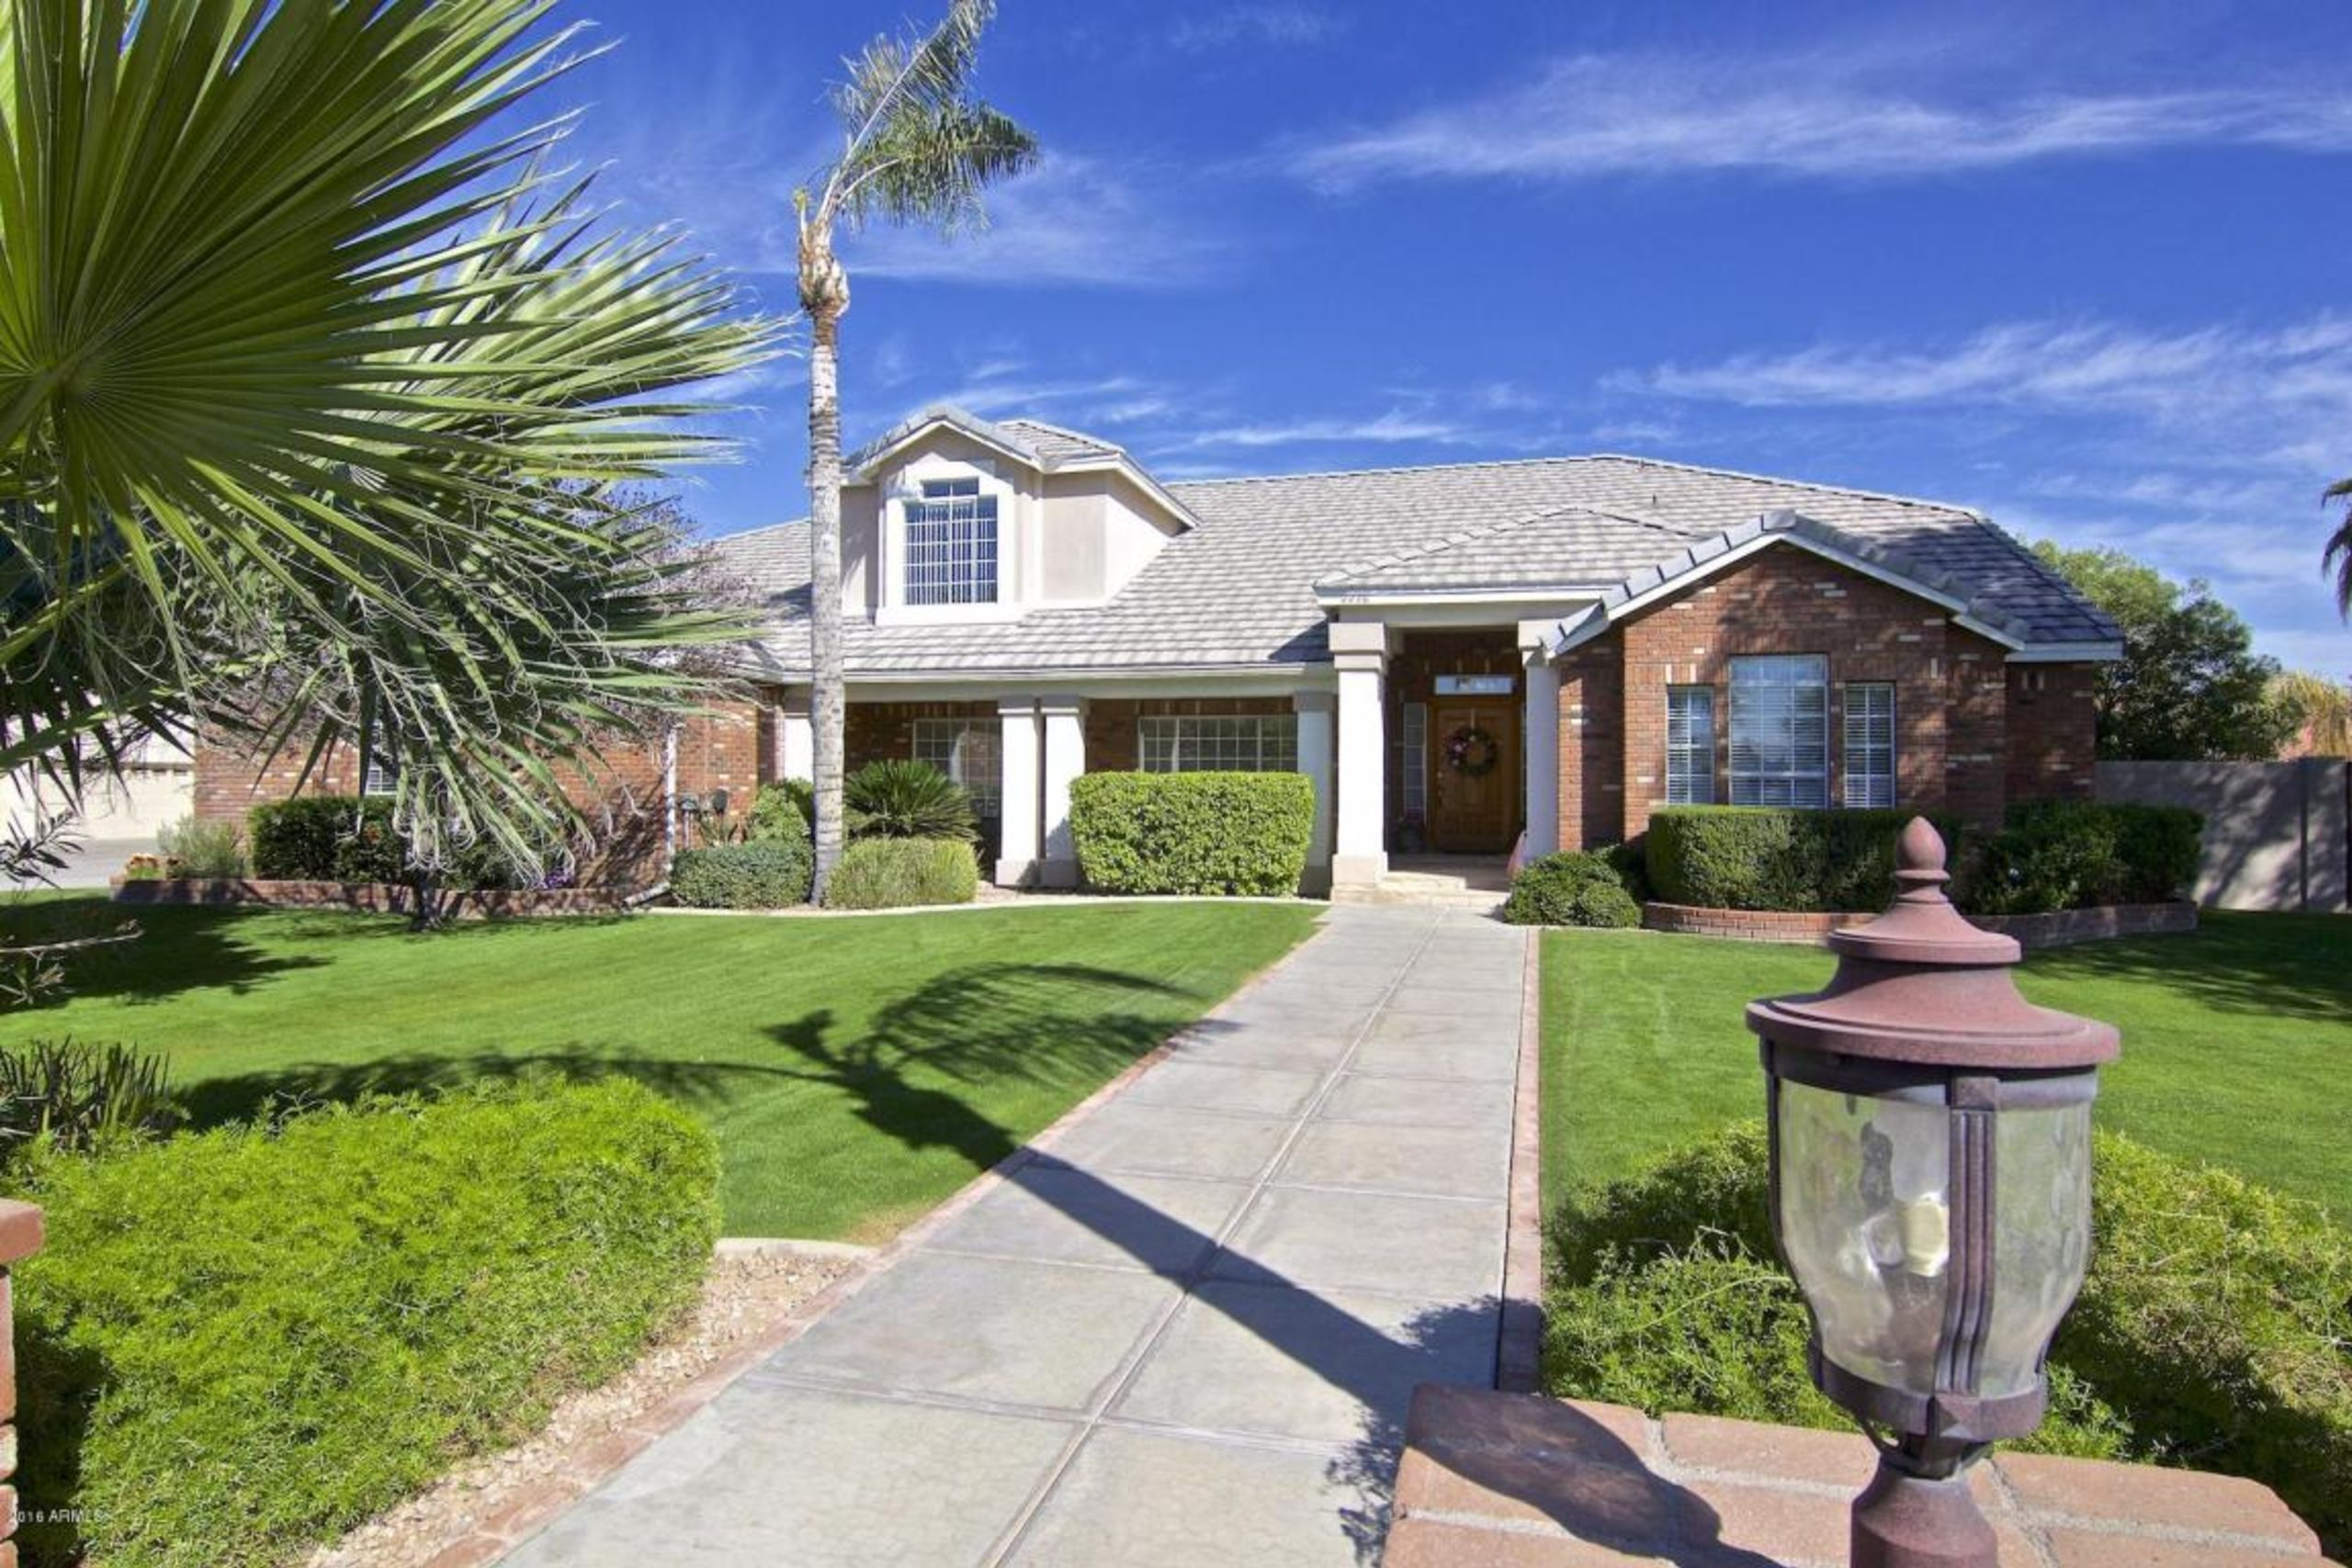 Chandler Home For Sale with Pool, 437 E Tonto Pl.